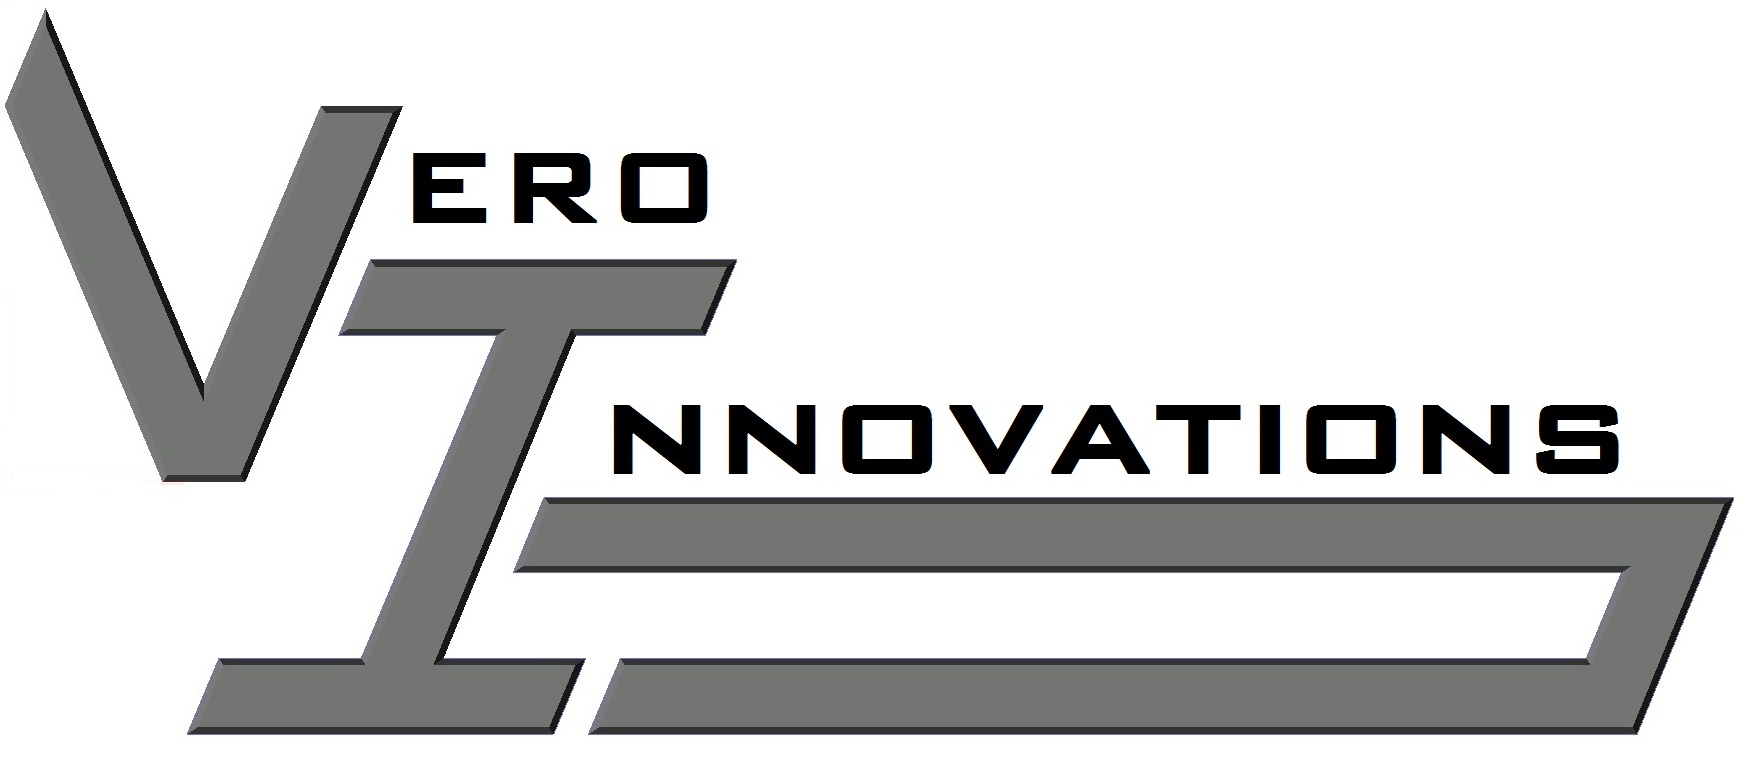 Vero Innovations